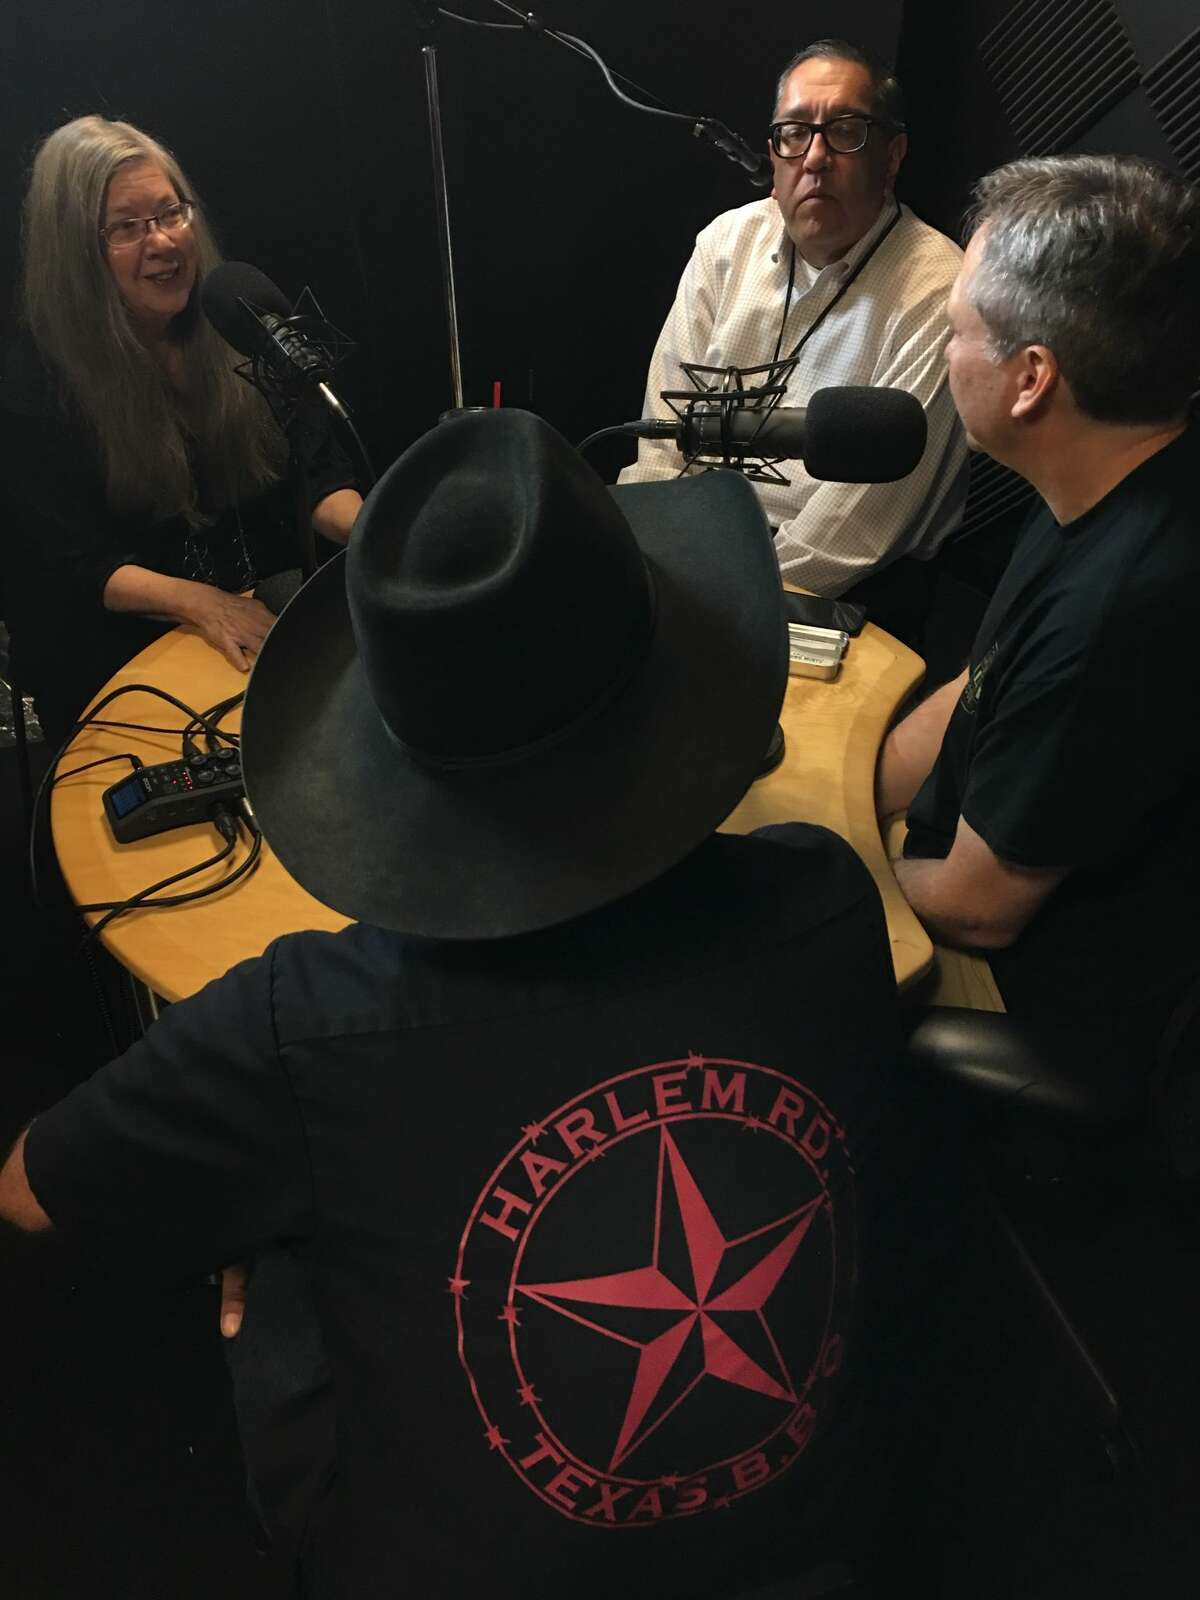 Ara Malekian joins J.C. Reid, Alison Cook and Greg Morago in the Chronicle podcast studio for an episode of BBQ State of Mind.